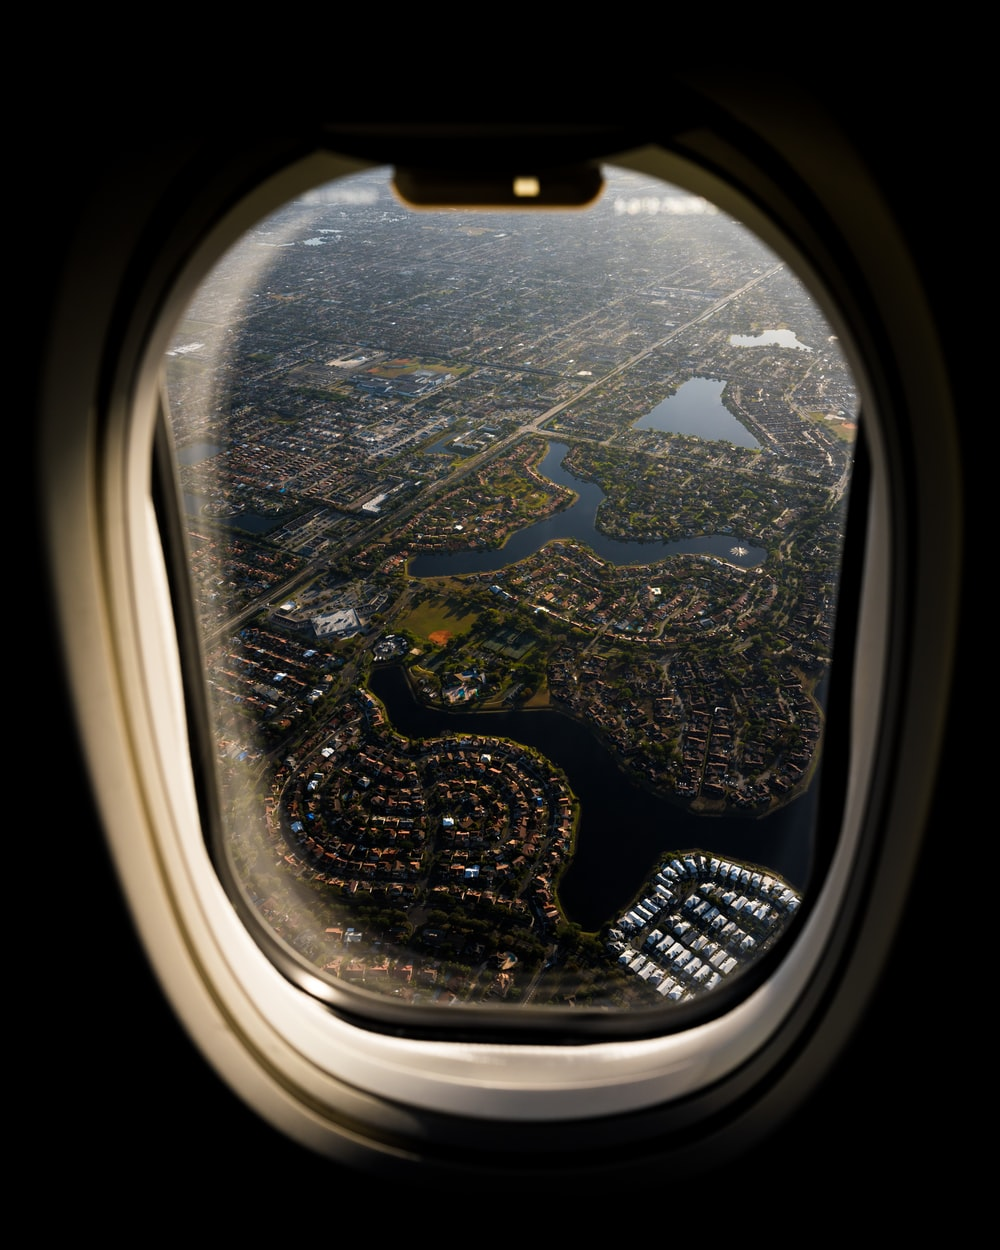 airplane window view of city during daytime